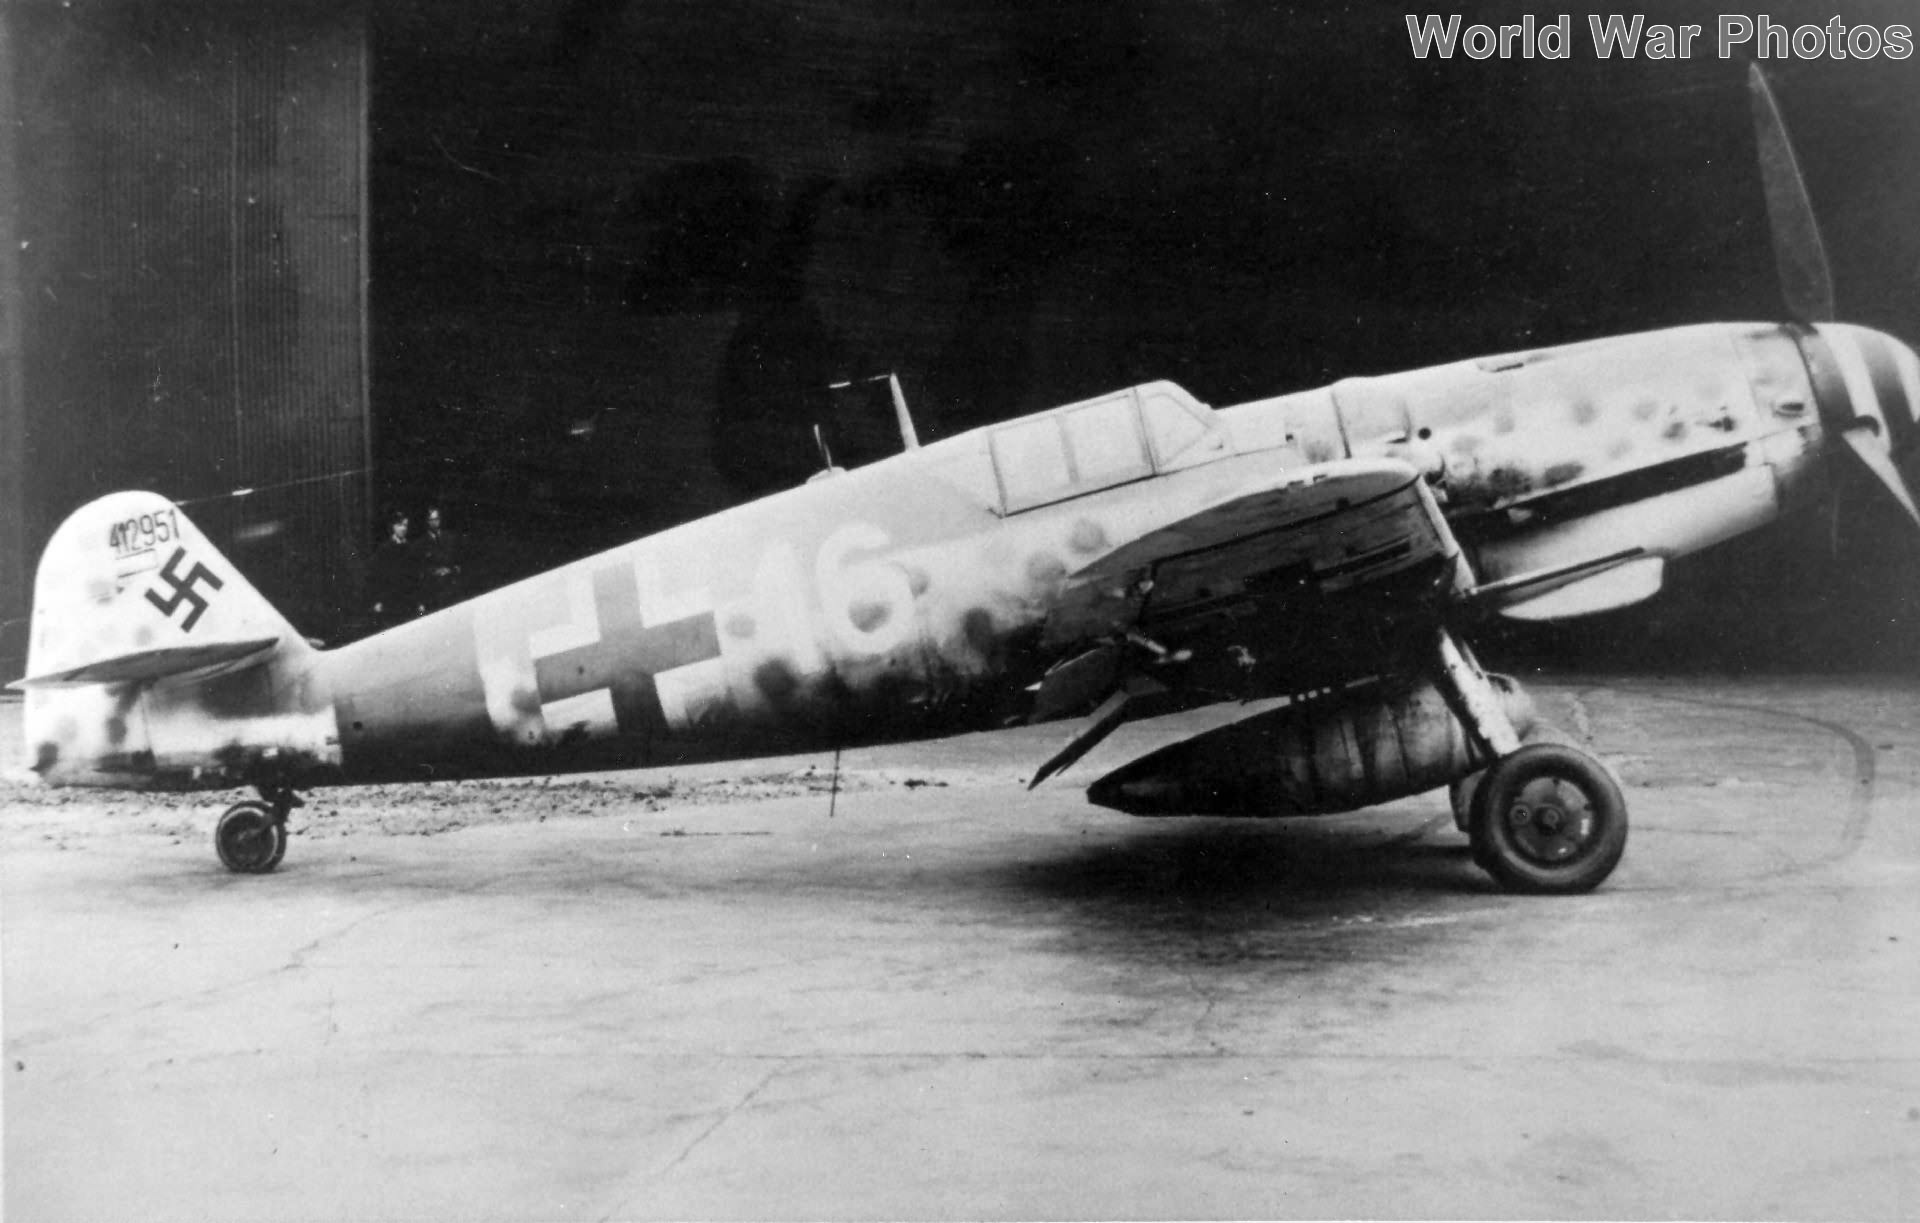 Captured Bf109G-6 W.Nr 412951 of the 1/JG 301